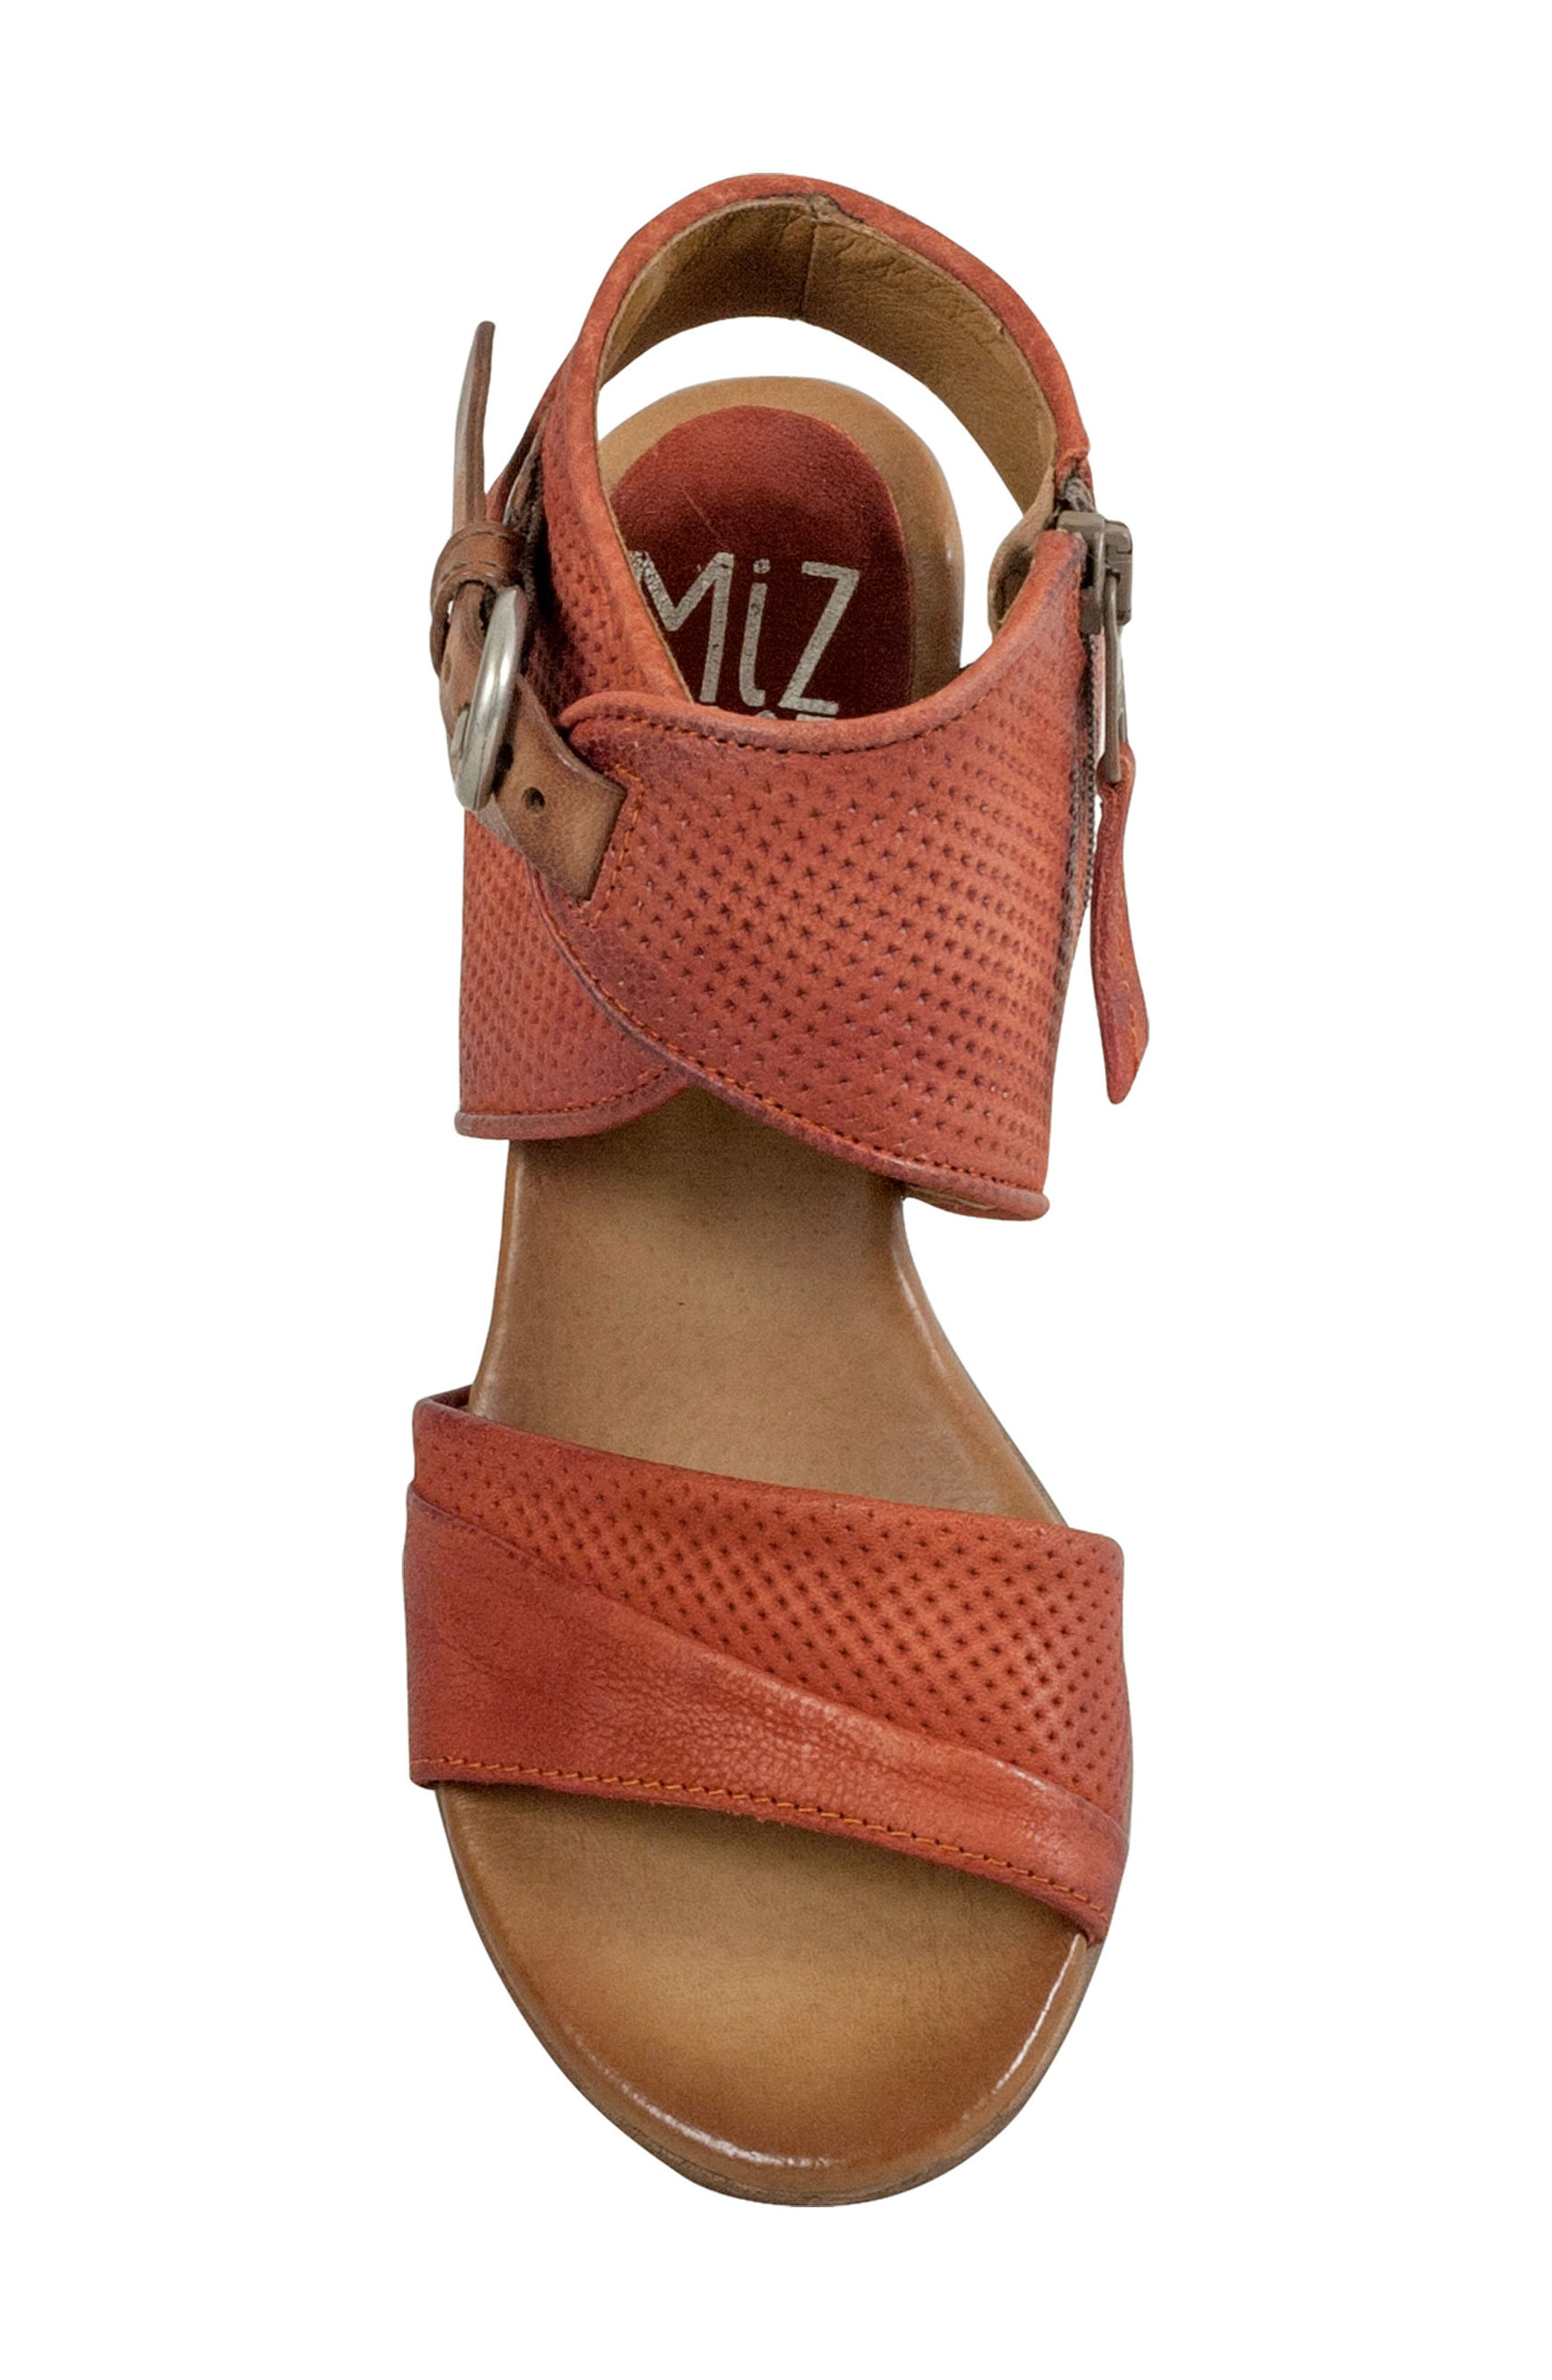 Chatham Textured Sandal,                             Alternate thumbnail 5, color,                             Rust Leather